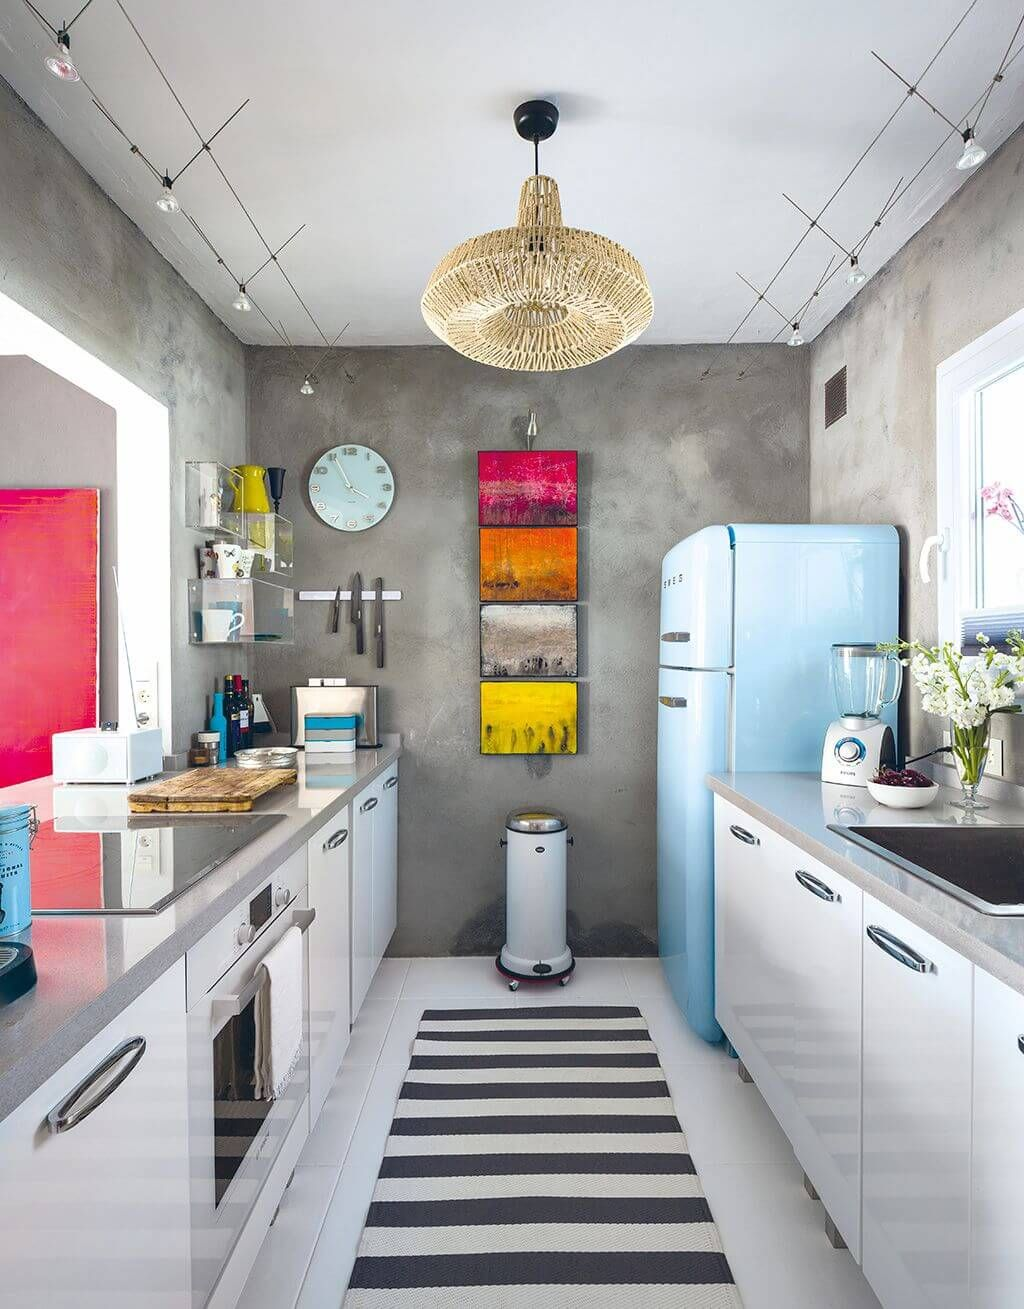 10 Kitchen Trash Can Ideas 2020 Cool Way To Save Nature In 2020